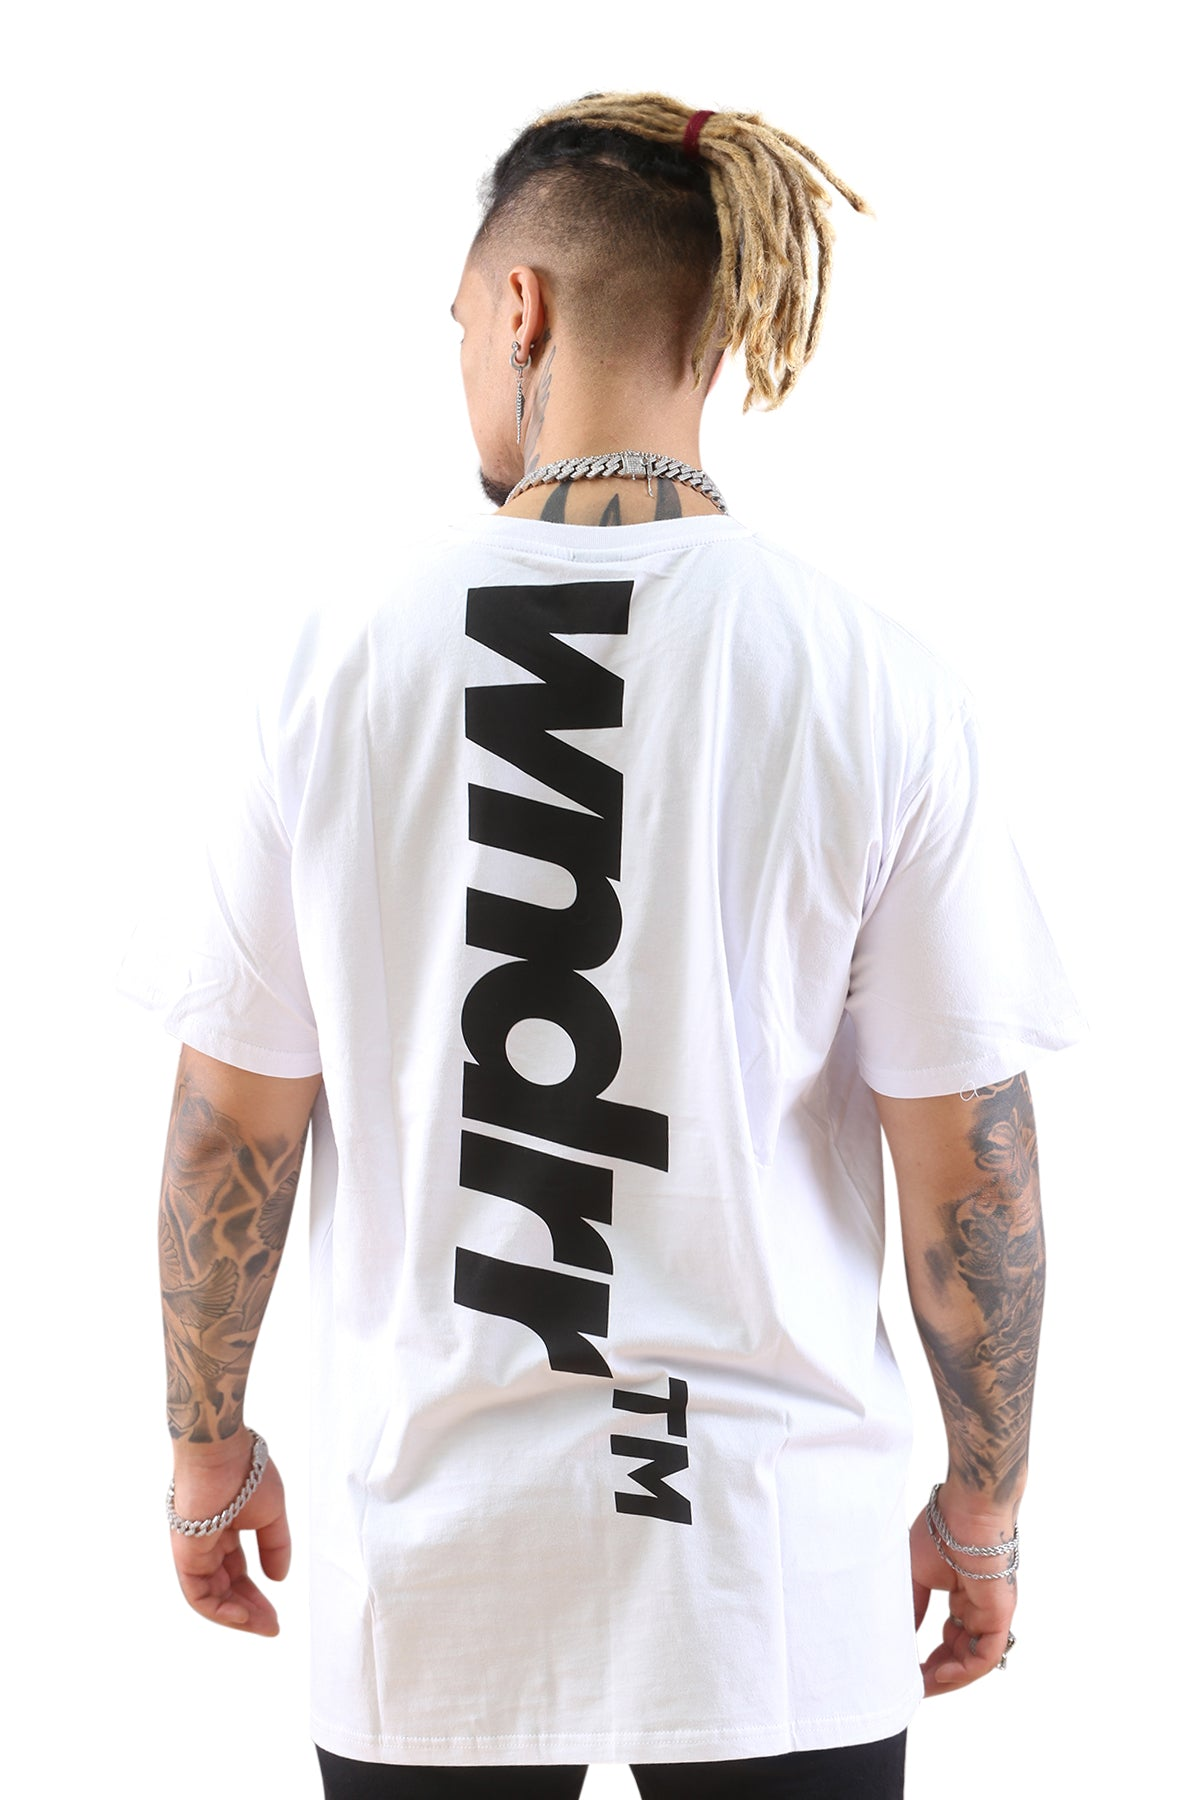 WNDRR Backlash Custom Fit Tee White Back